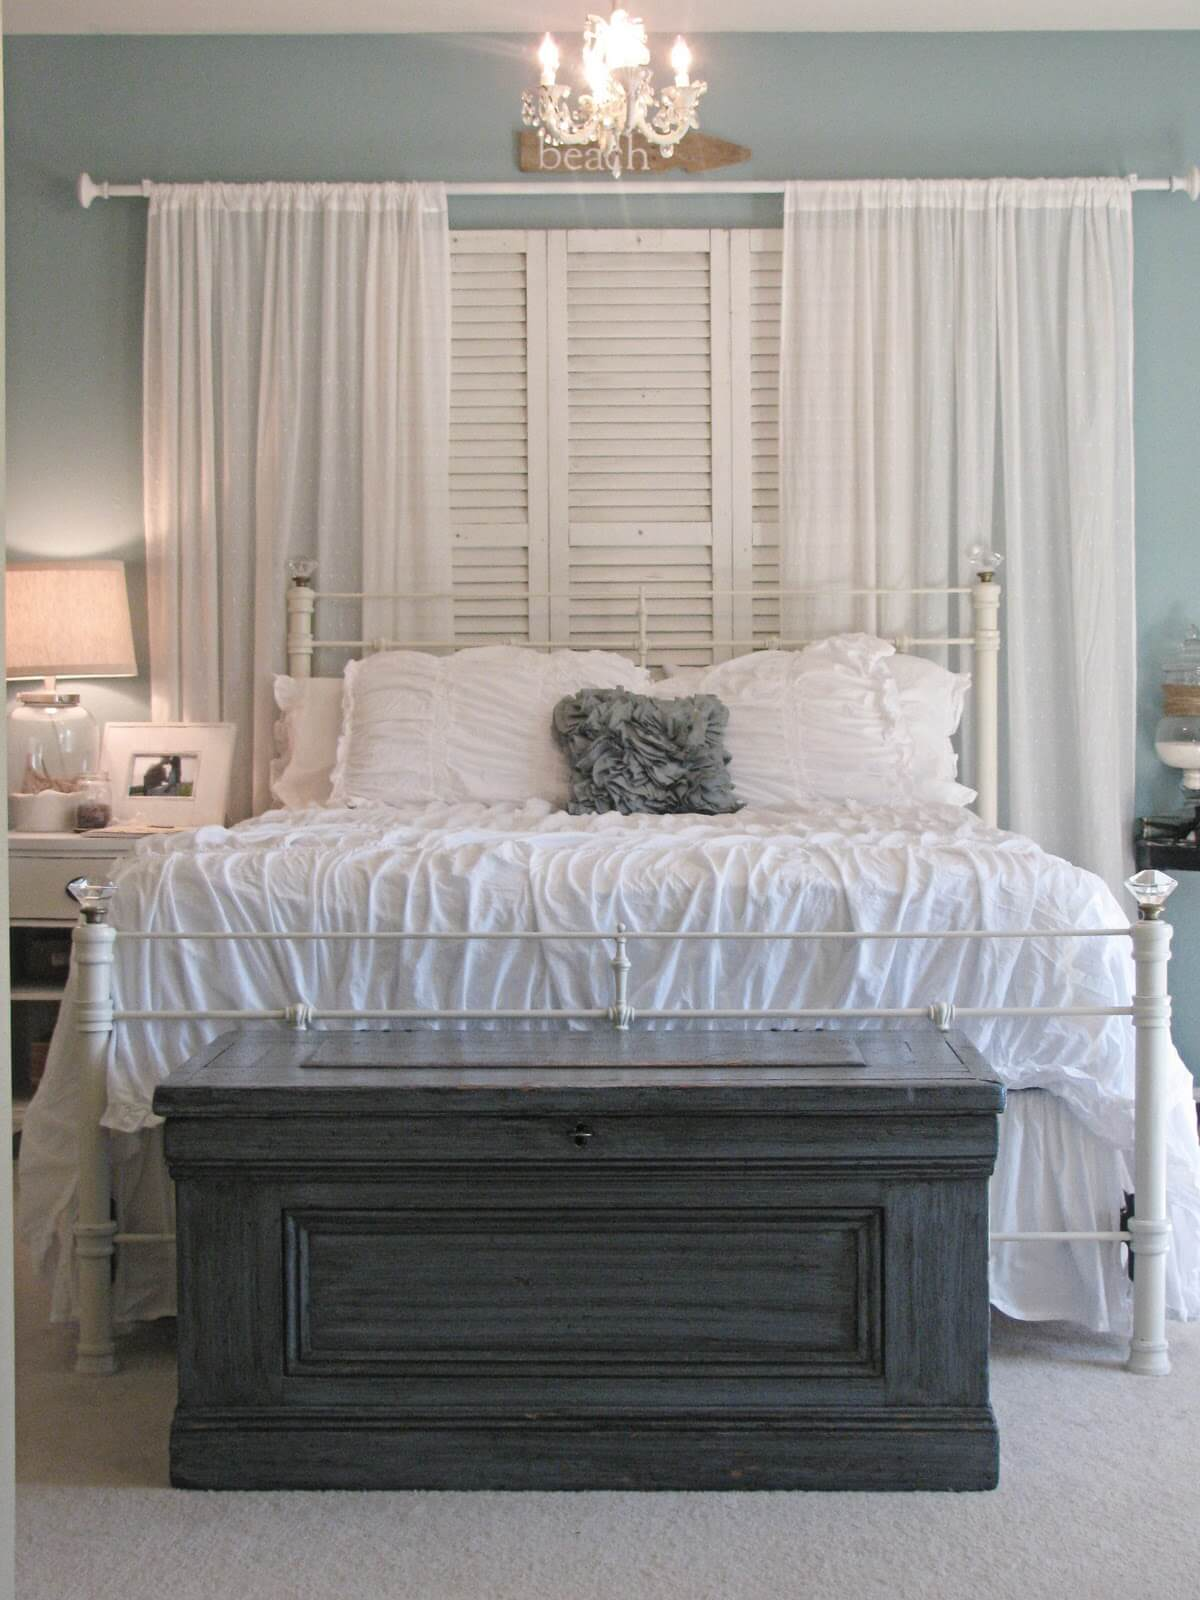 DIY Home Decor 18 Ways To Repurpose Old Shutters